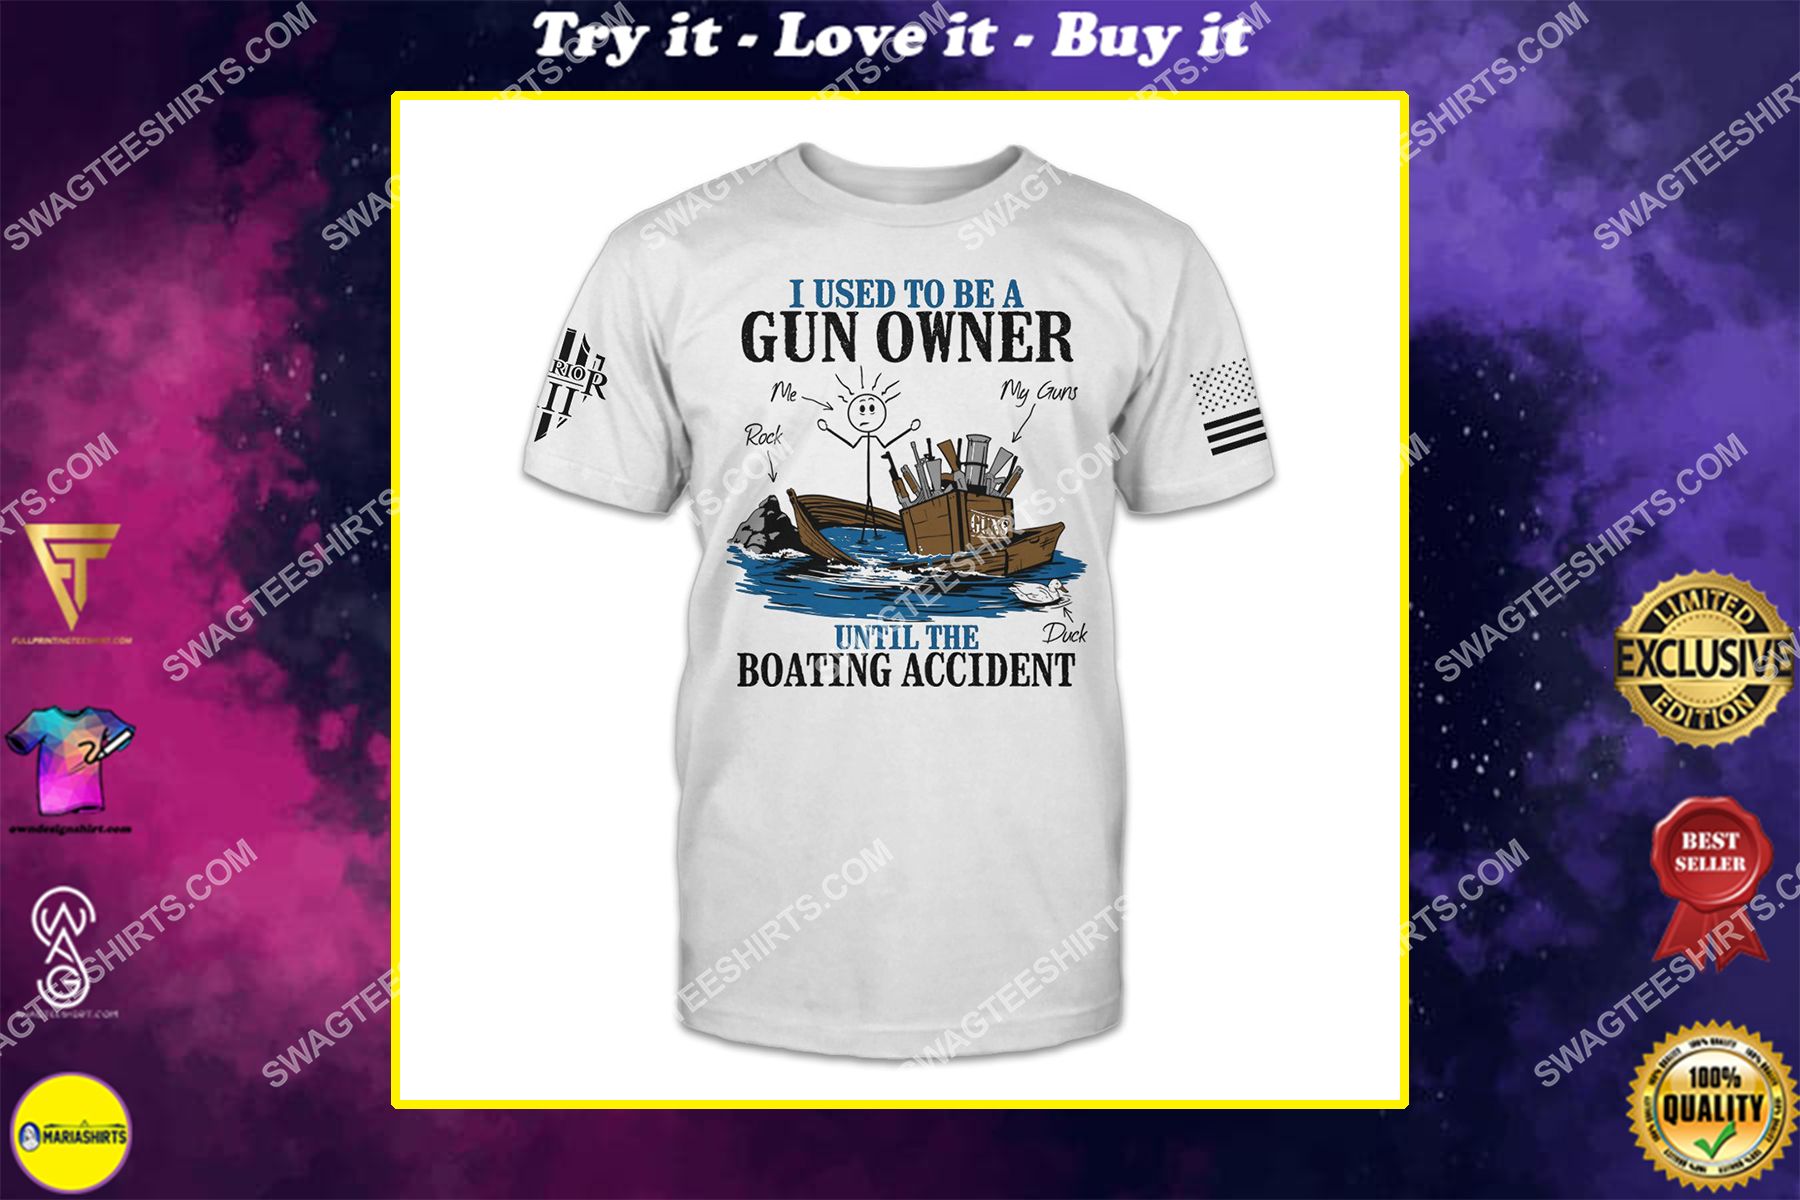 i used to be a gun owner until the boating accident politics shirt